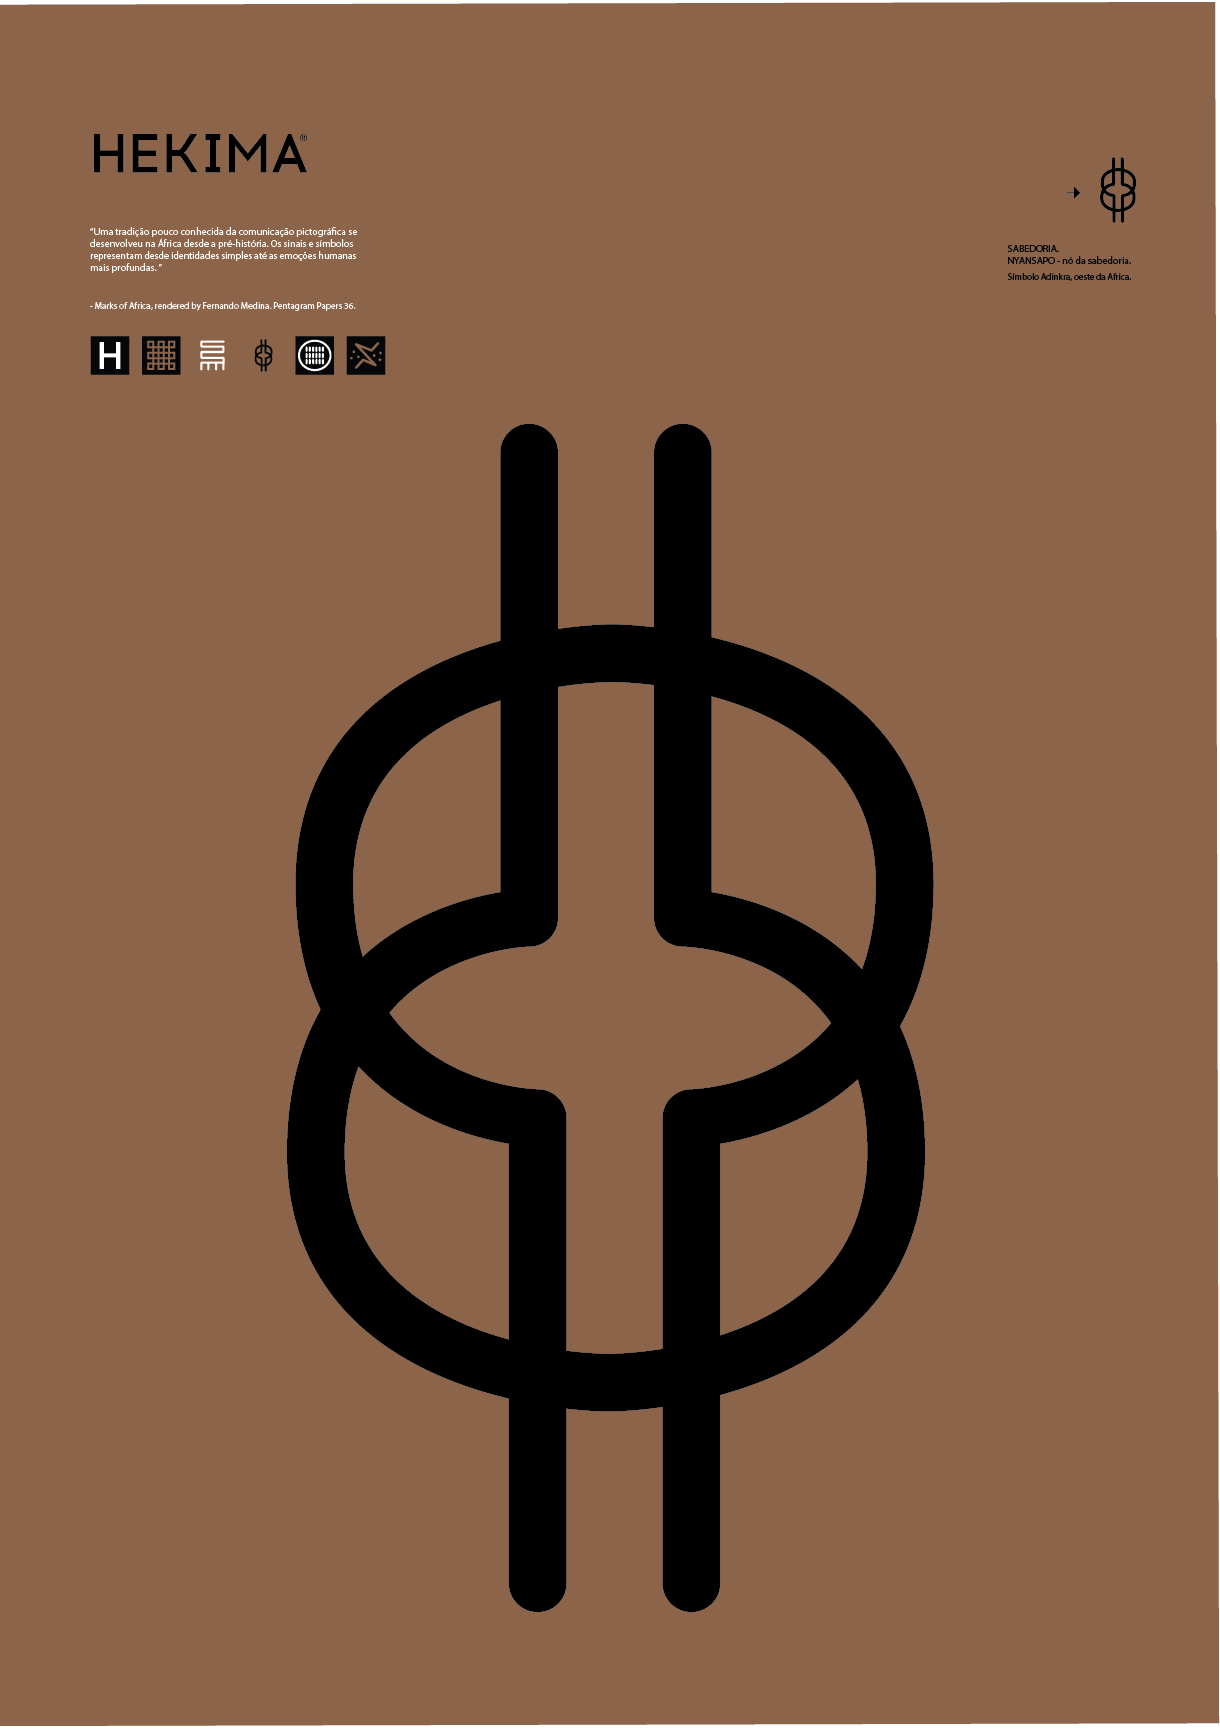 posters-04.png